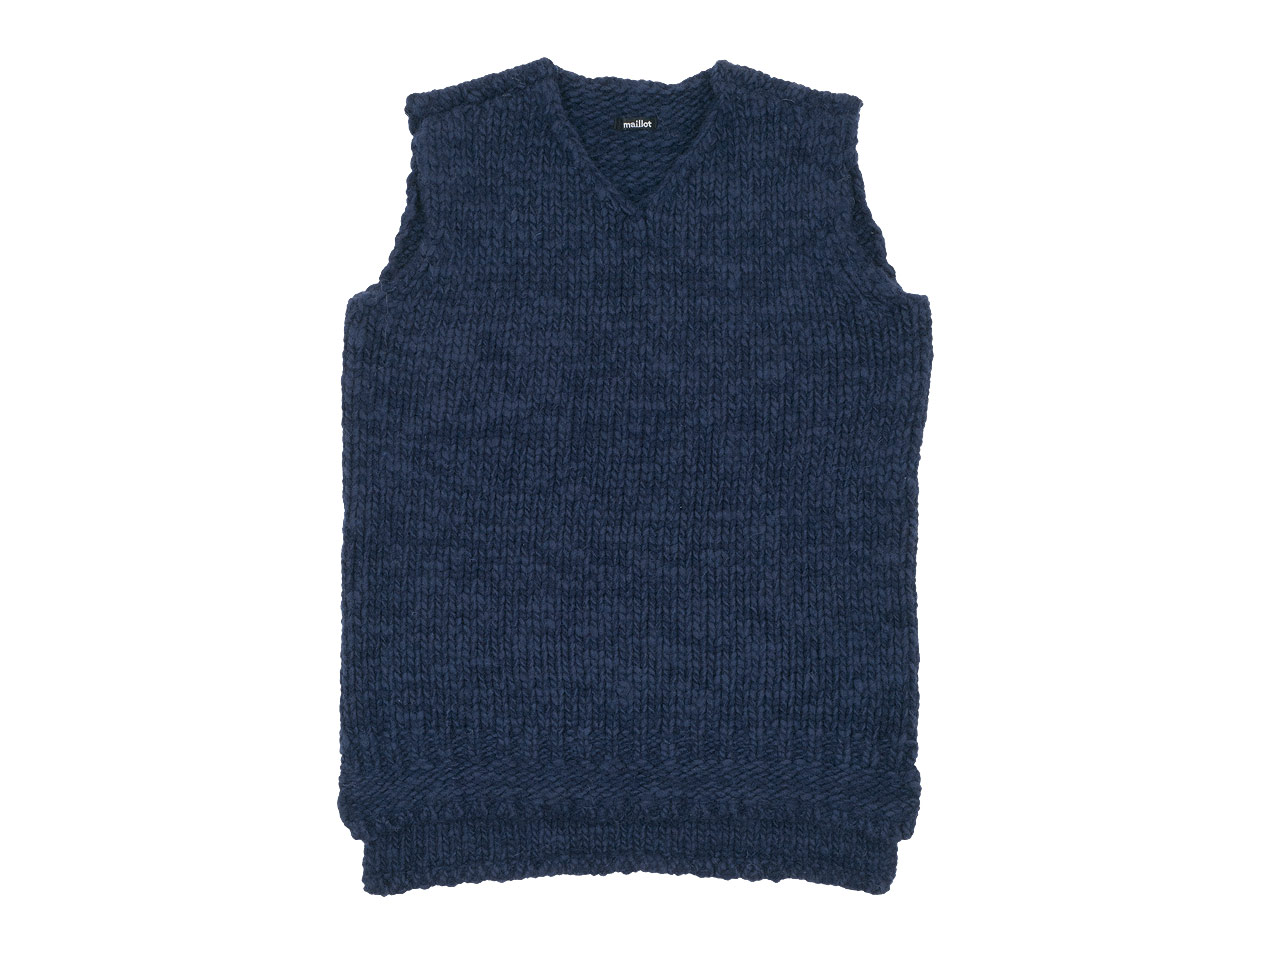 maillot mature hand frame vest / fisherman sweater